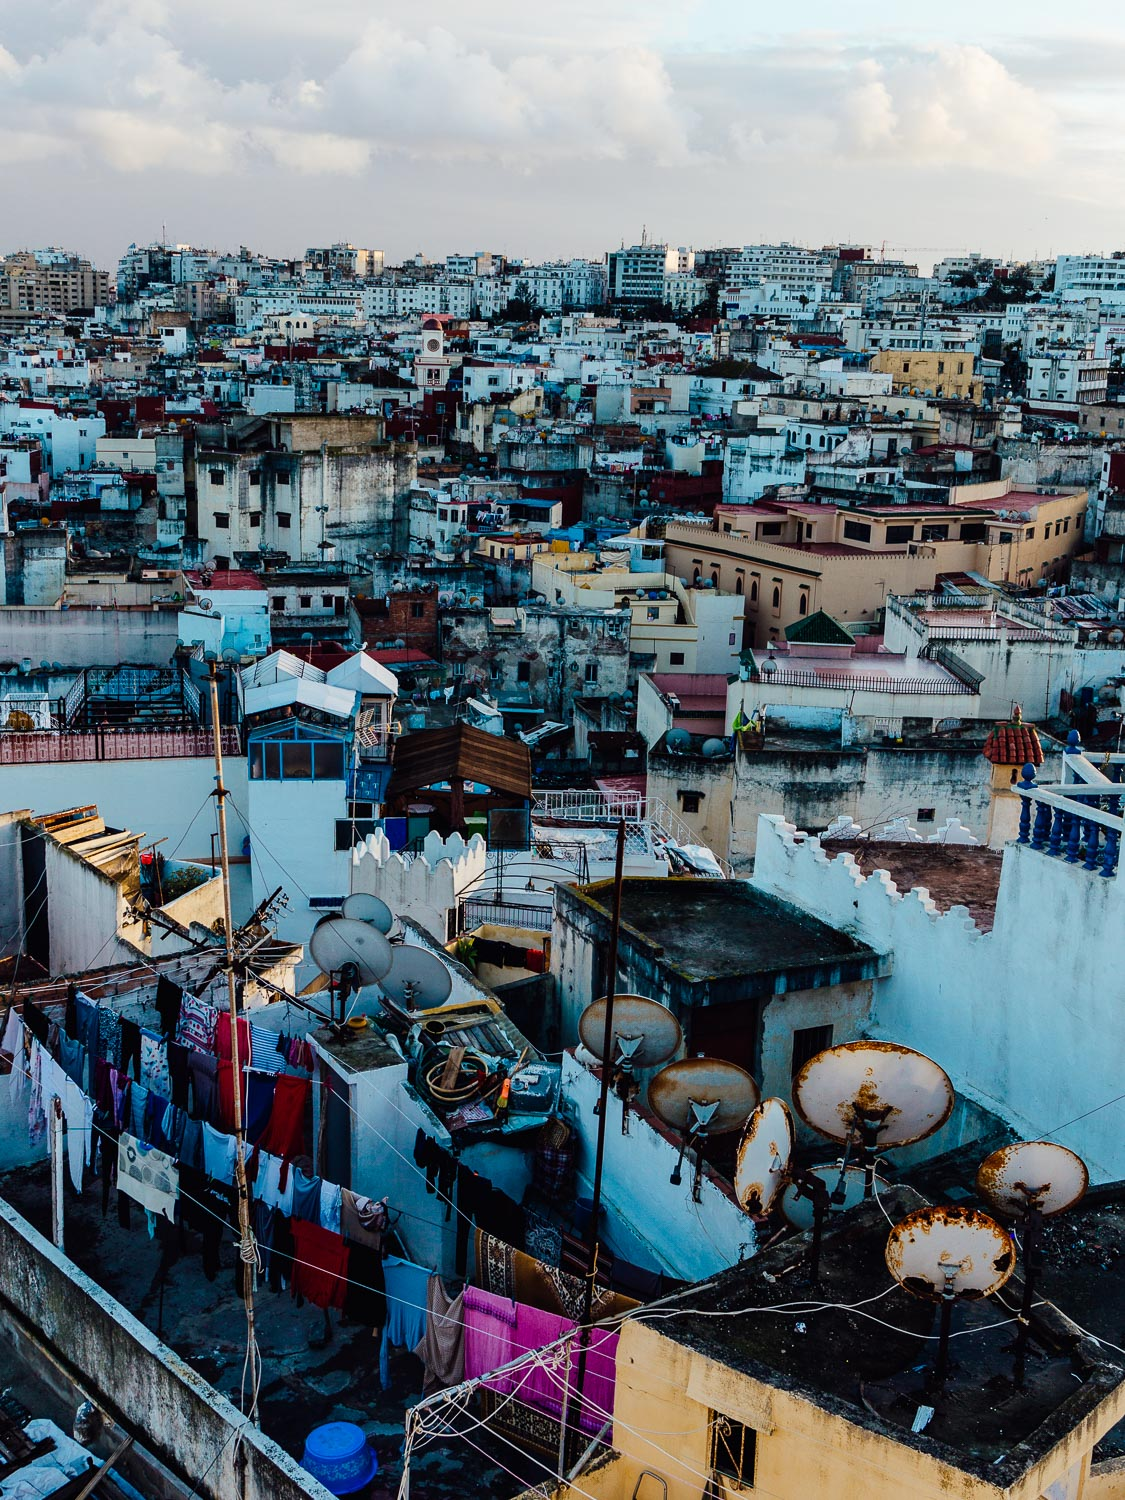 Skyline-Morocco-Sunset-Durazo-Photography-Project-Travel-Street